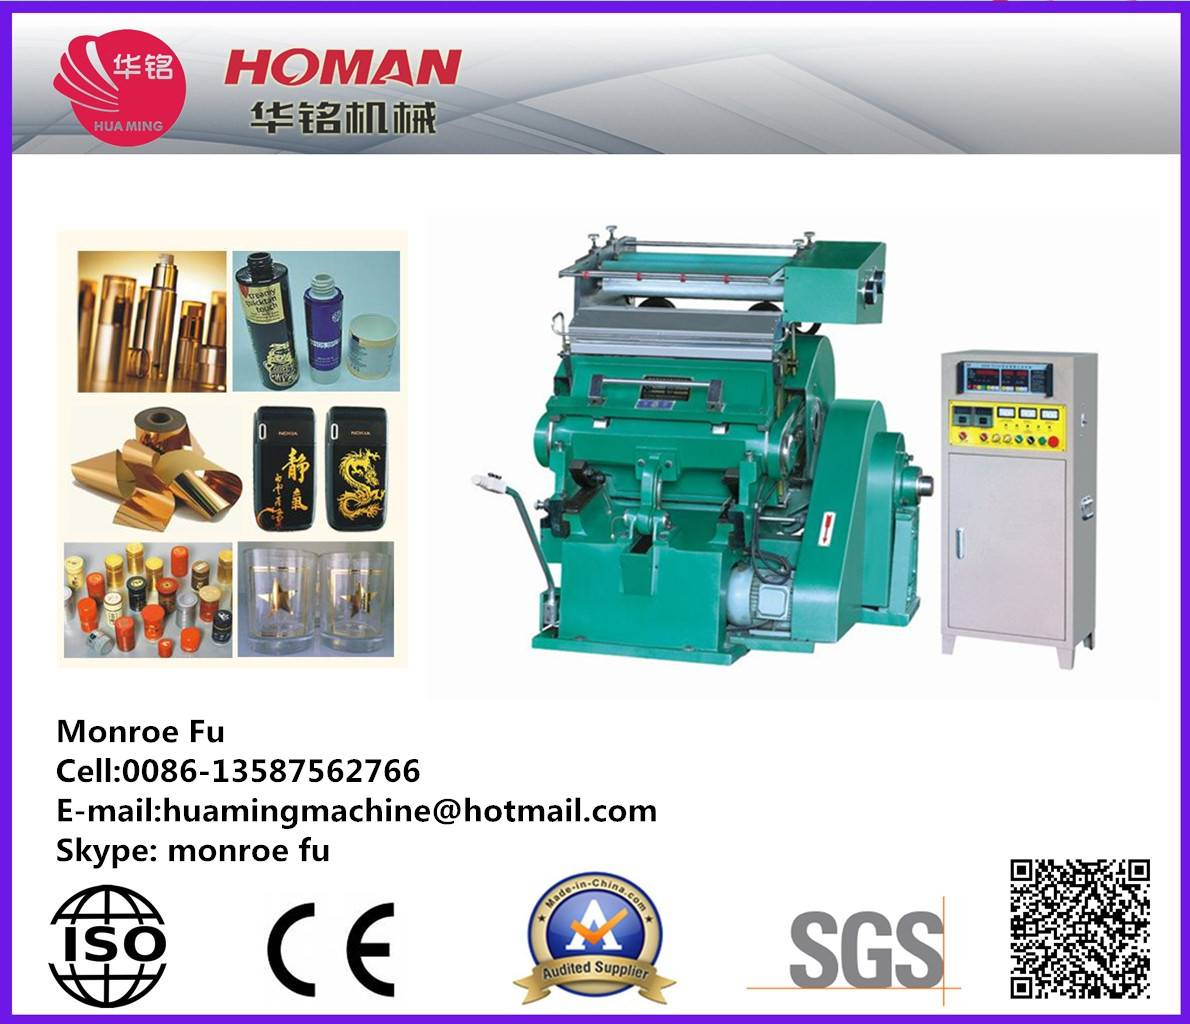 TYMB 750 Hot Foil Stamping and die cutting machine